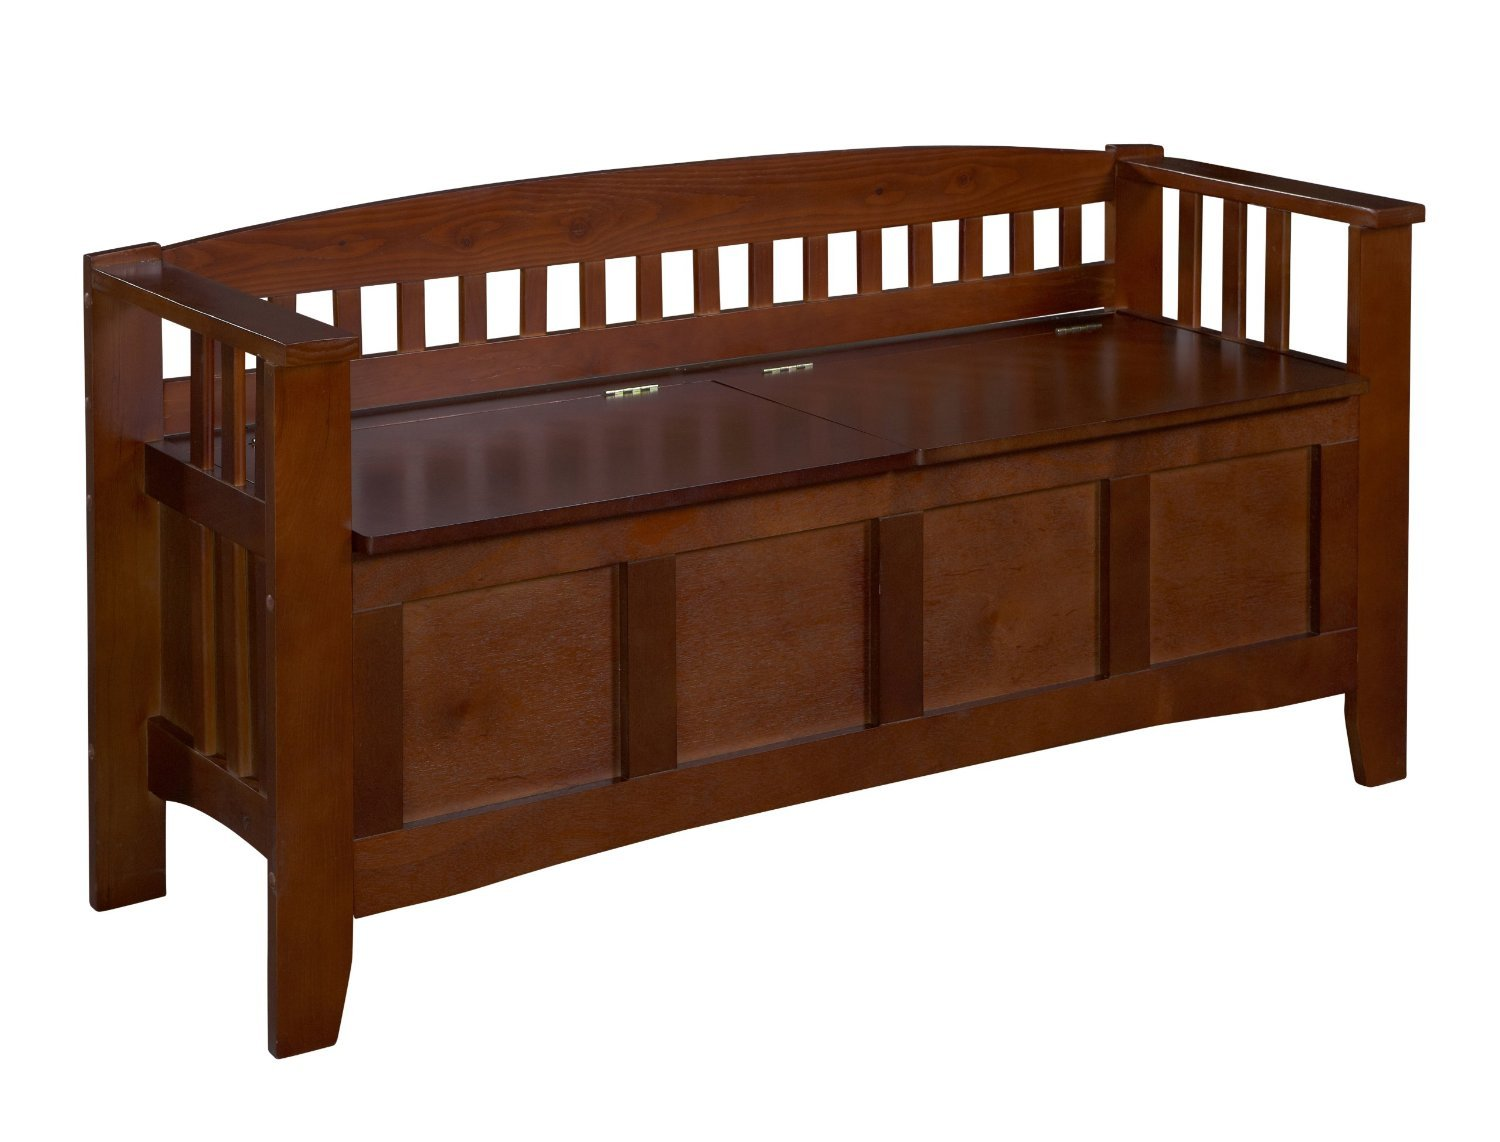 Premium Storage Bench Furniture Seat Patio Deck or Garden Seating in Wood Outdoor Design by Linon Home Decor